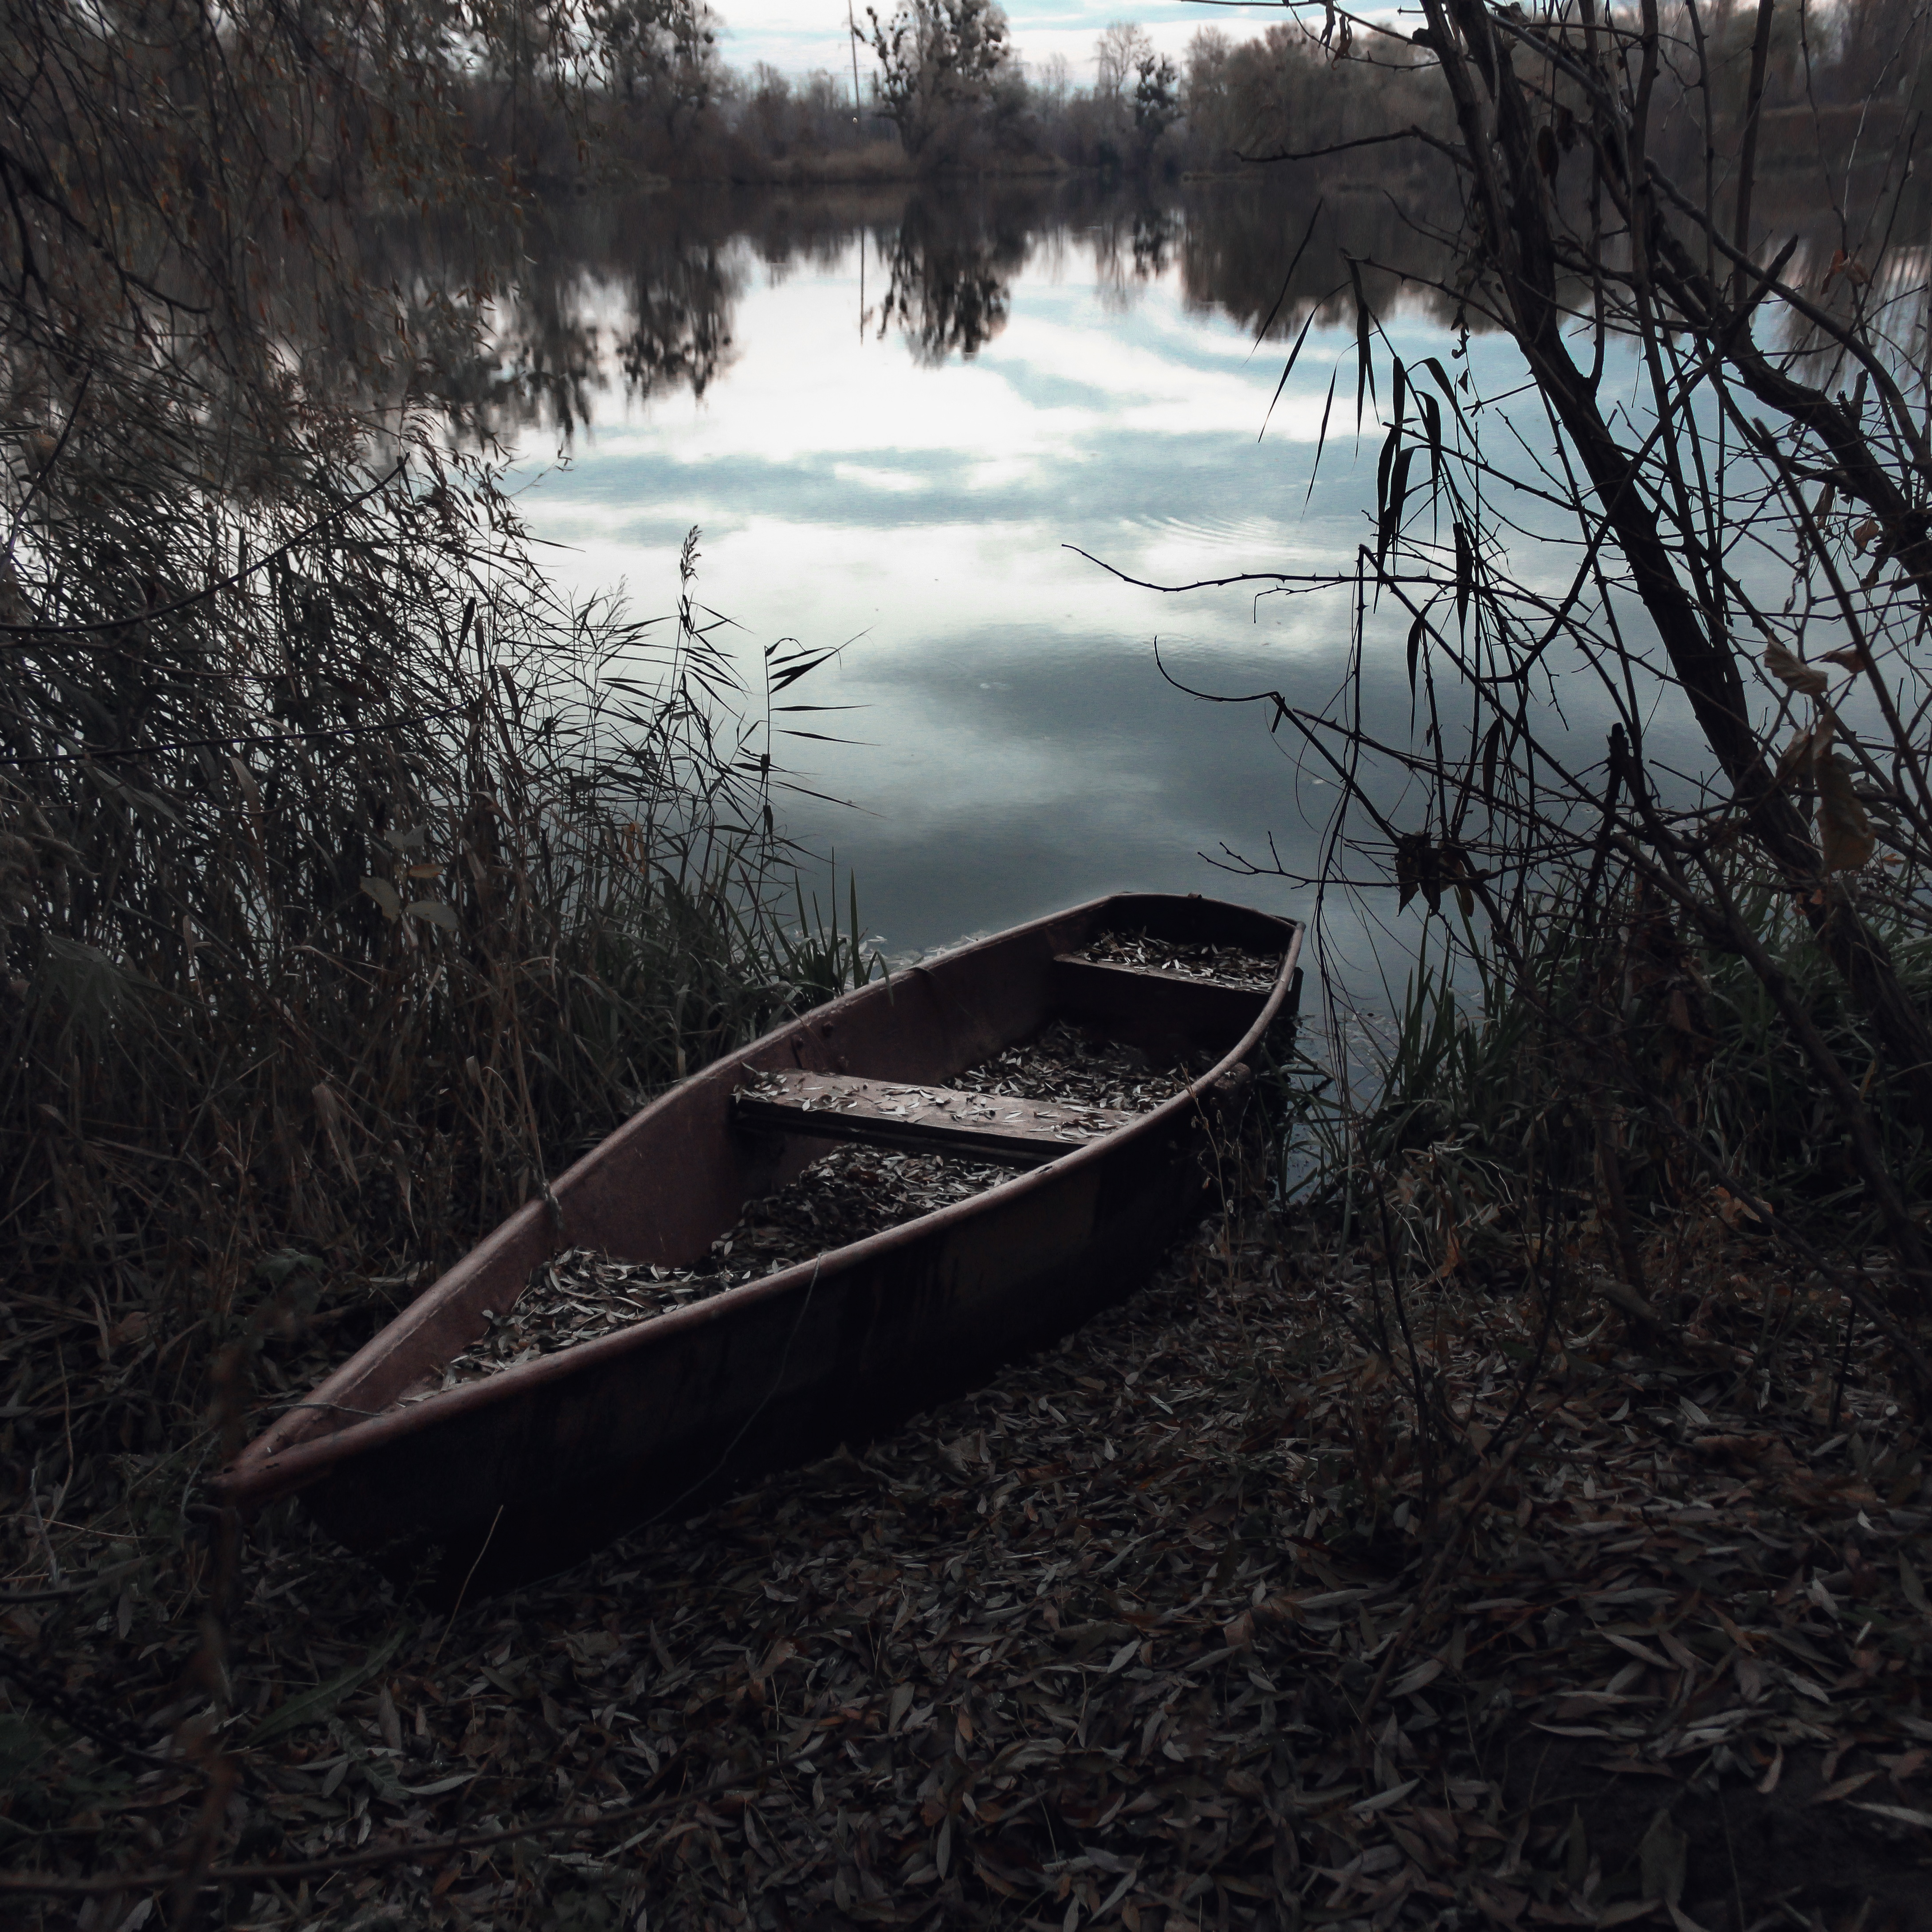 Brown Row Boat On Body Of Water Painting 183 Free Stock Photo